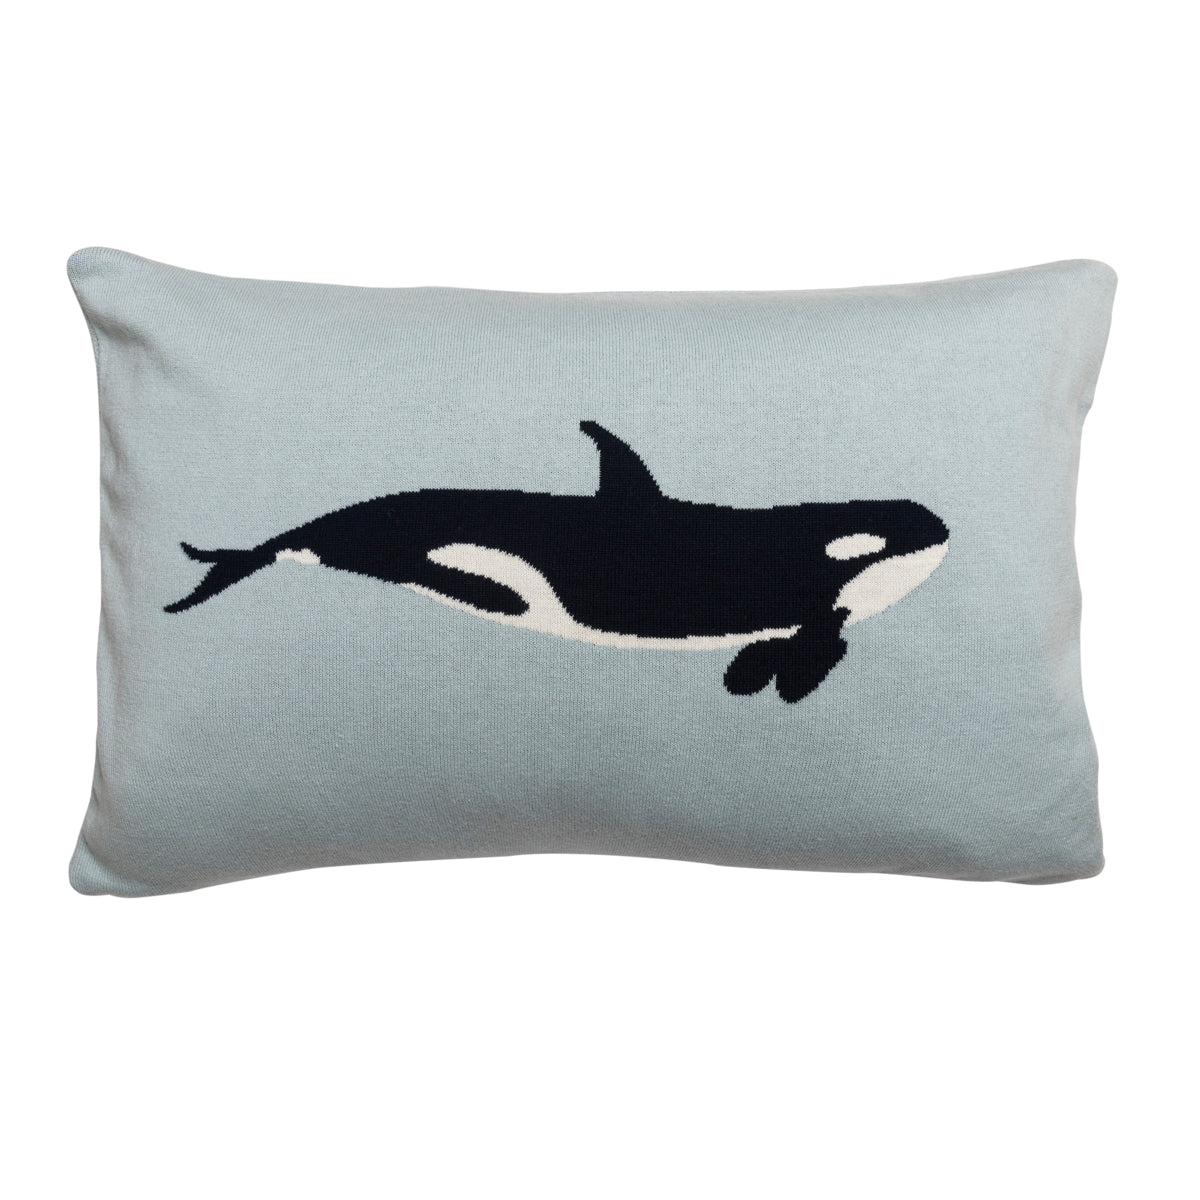 Sophie Allport Whales Statment Cusion with Killer Whale Design